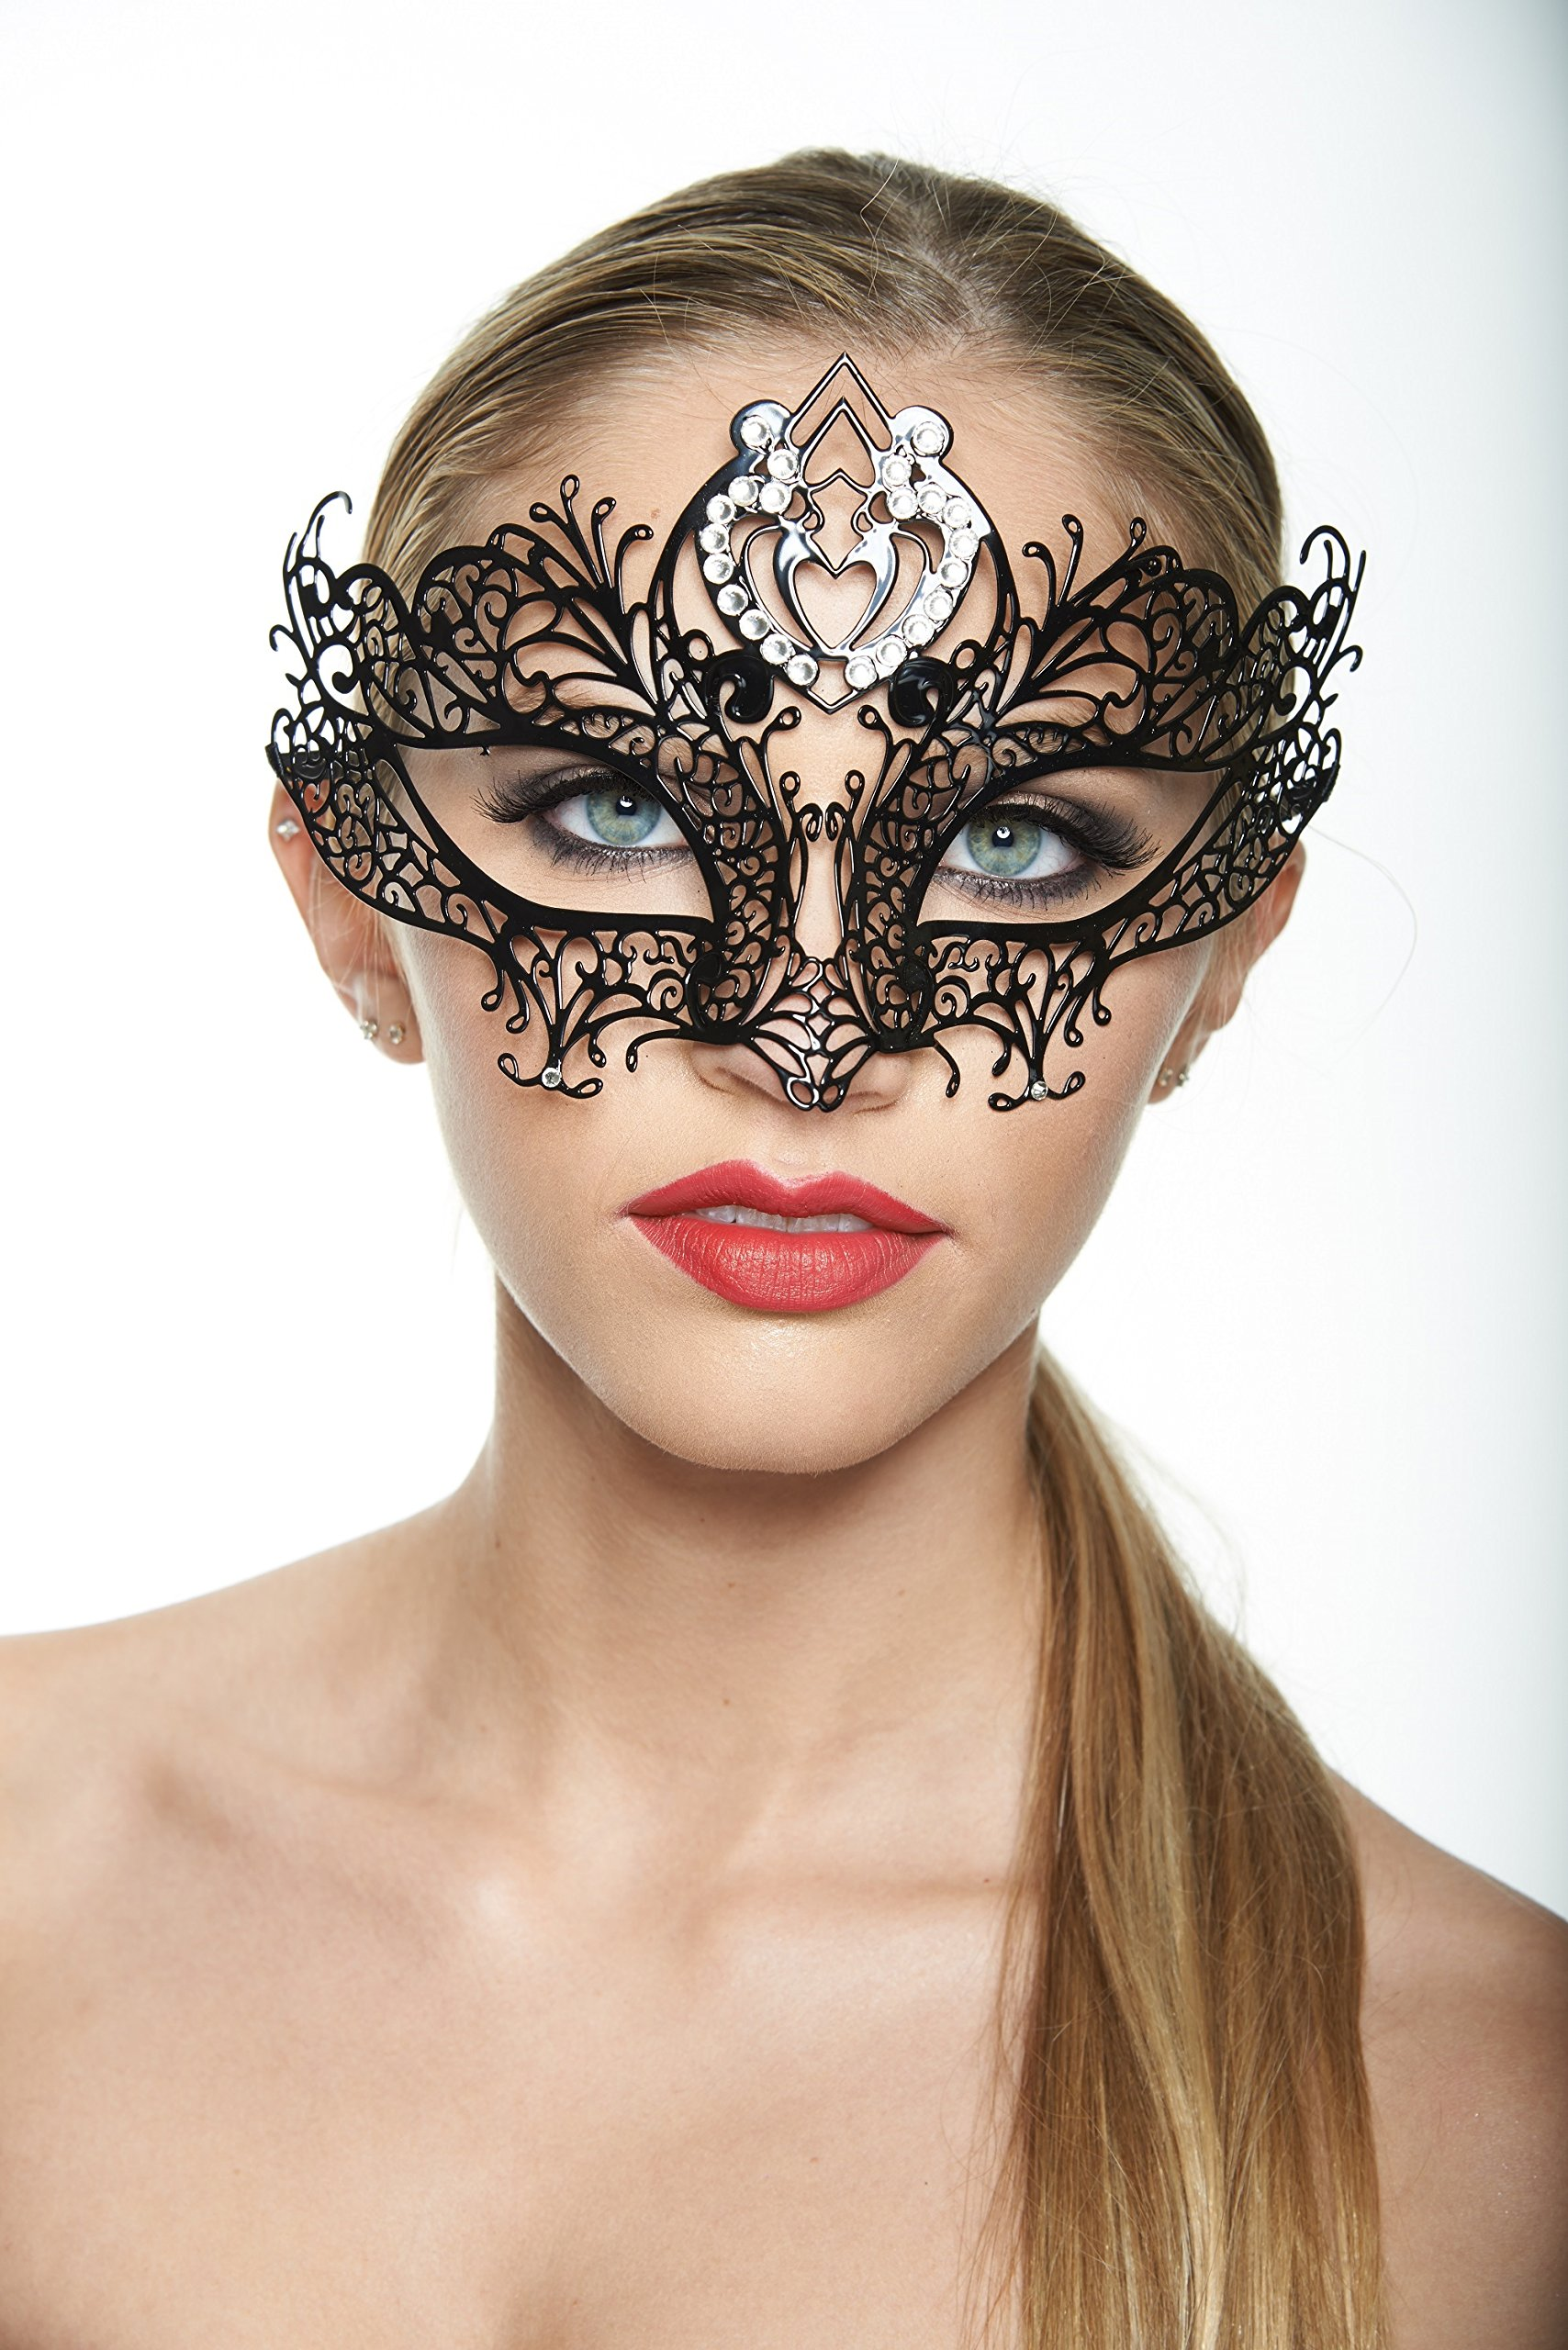 Kayso Inc Classic Black Collection Laser Cut Masquerade Masks, Love